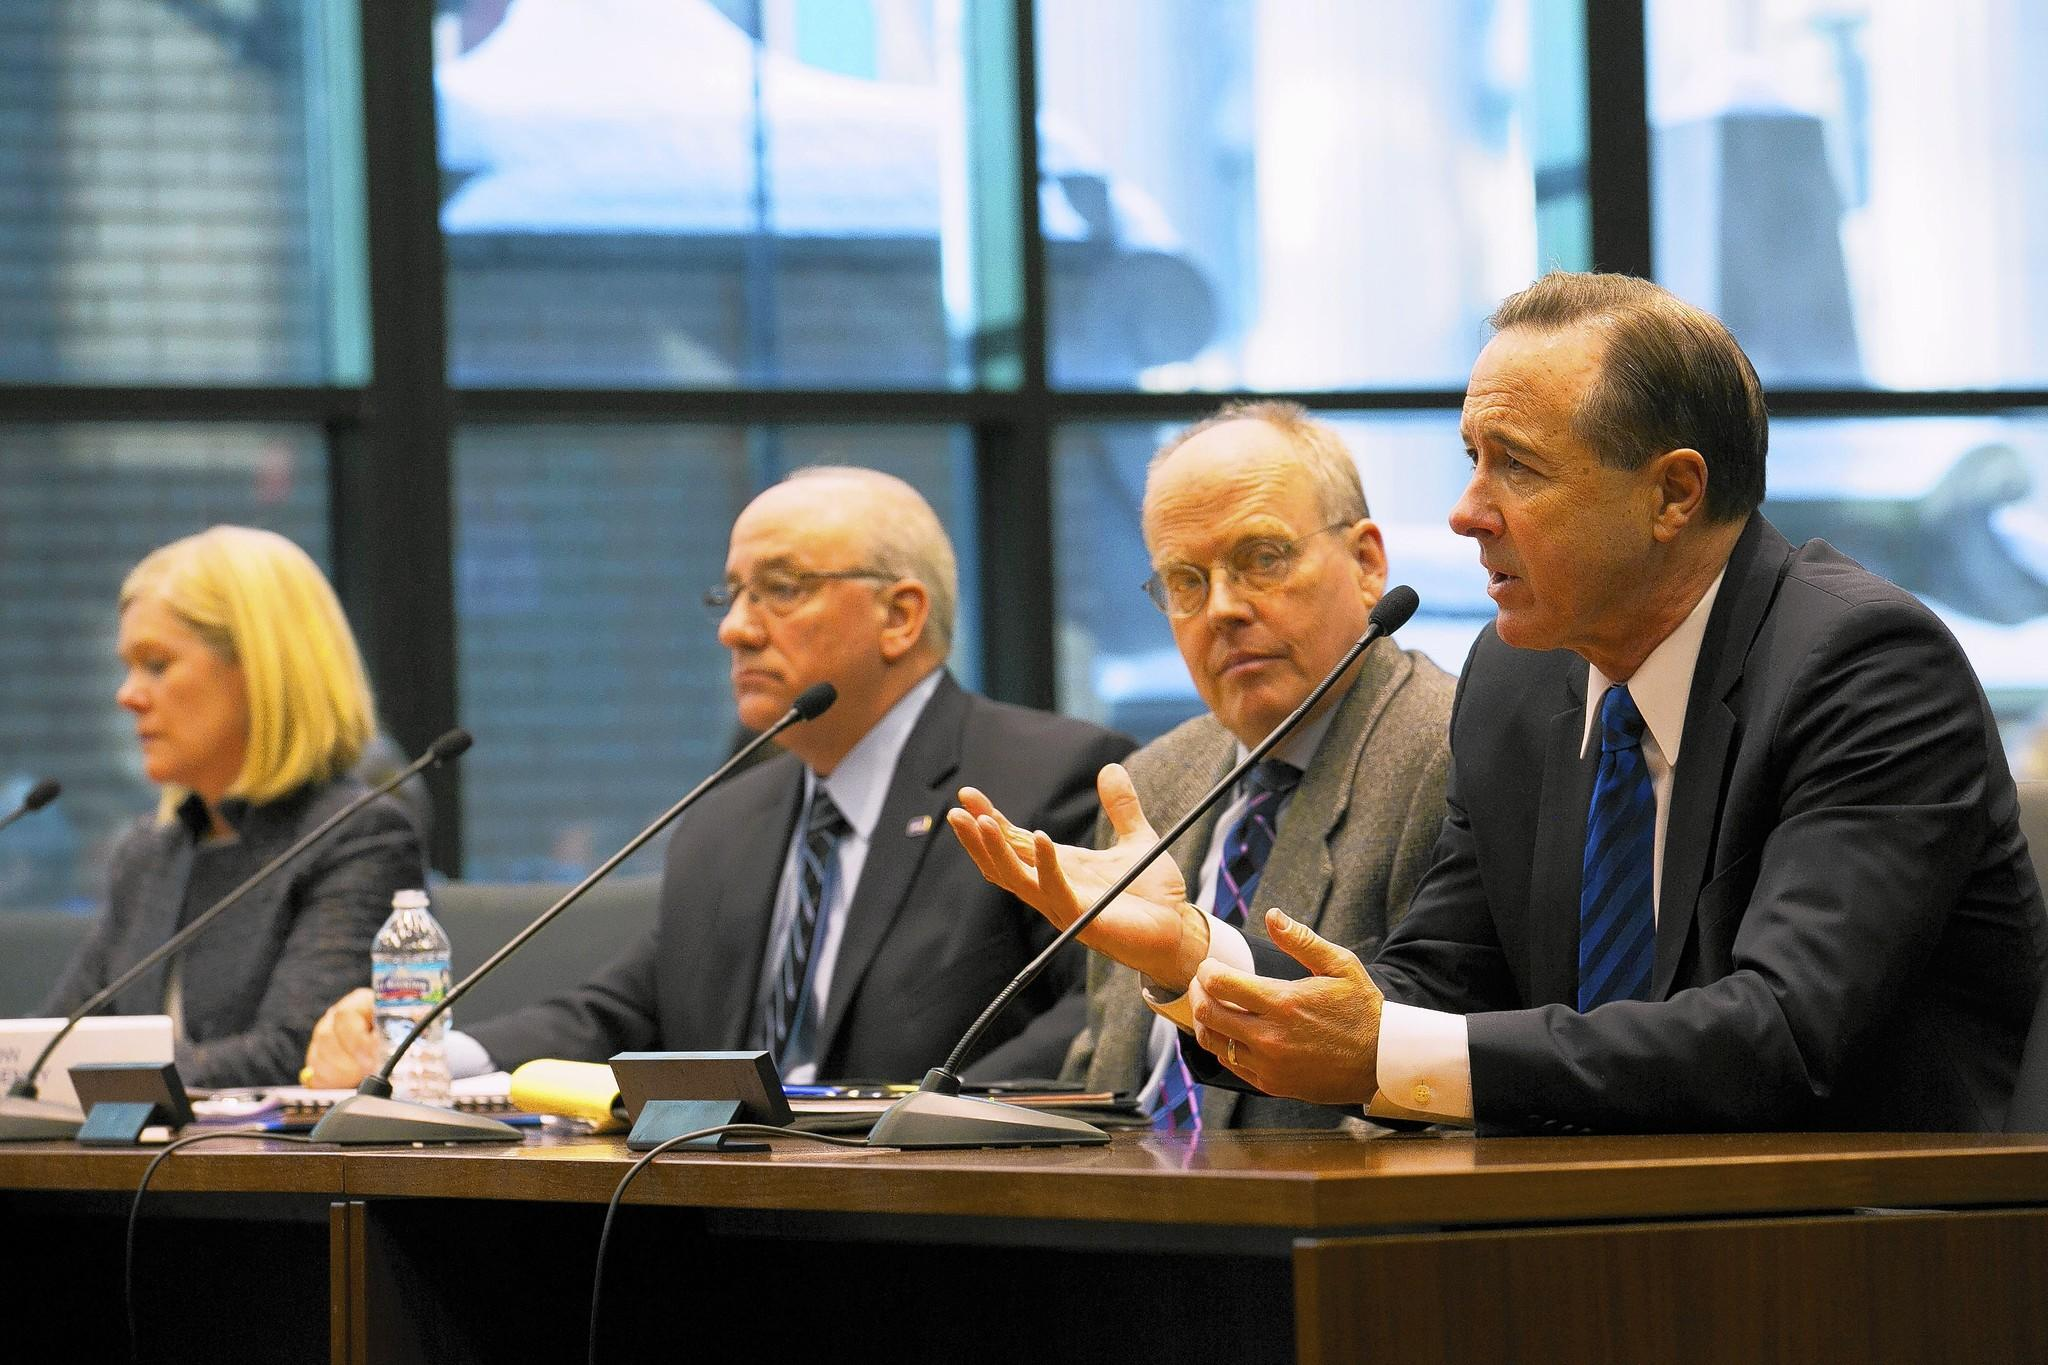 CTA President Forrest Claypool, right, speaks in February to an Illinois House transit panel with, from left, Leanne Redden, RTA senior executive director of planning; Don Orseno, Metra CEO; and Pace Executive Director T.J. Ross.